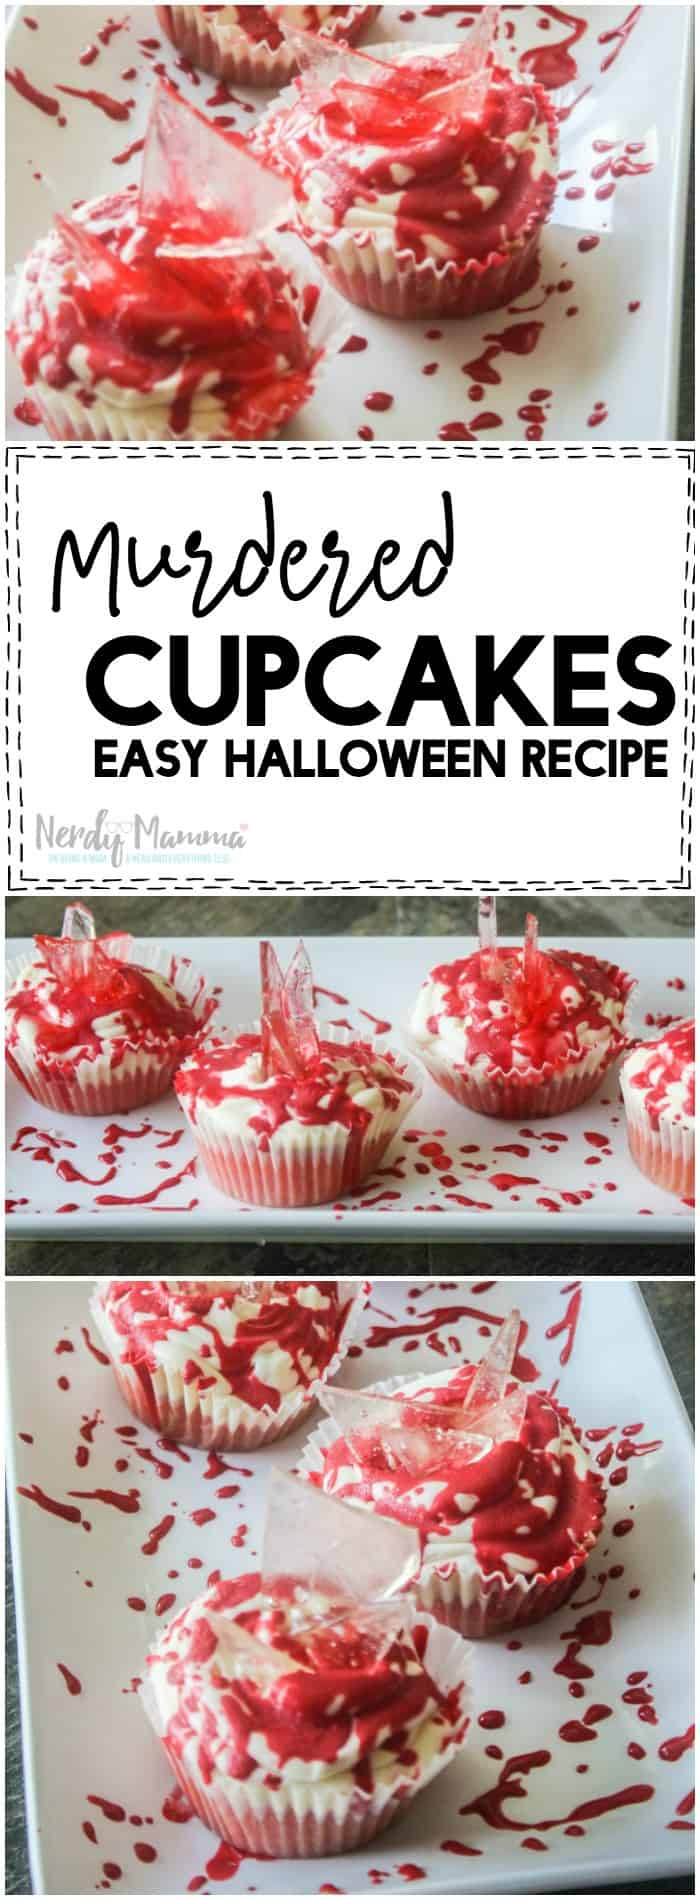 I have to make these Murdered Cupcakes for Halloween! How simple and easy. I love it.